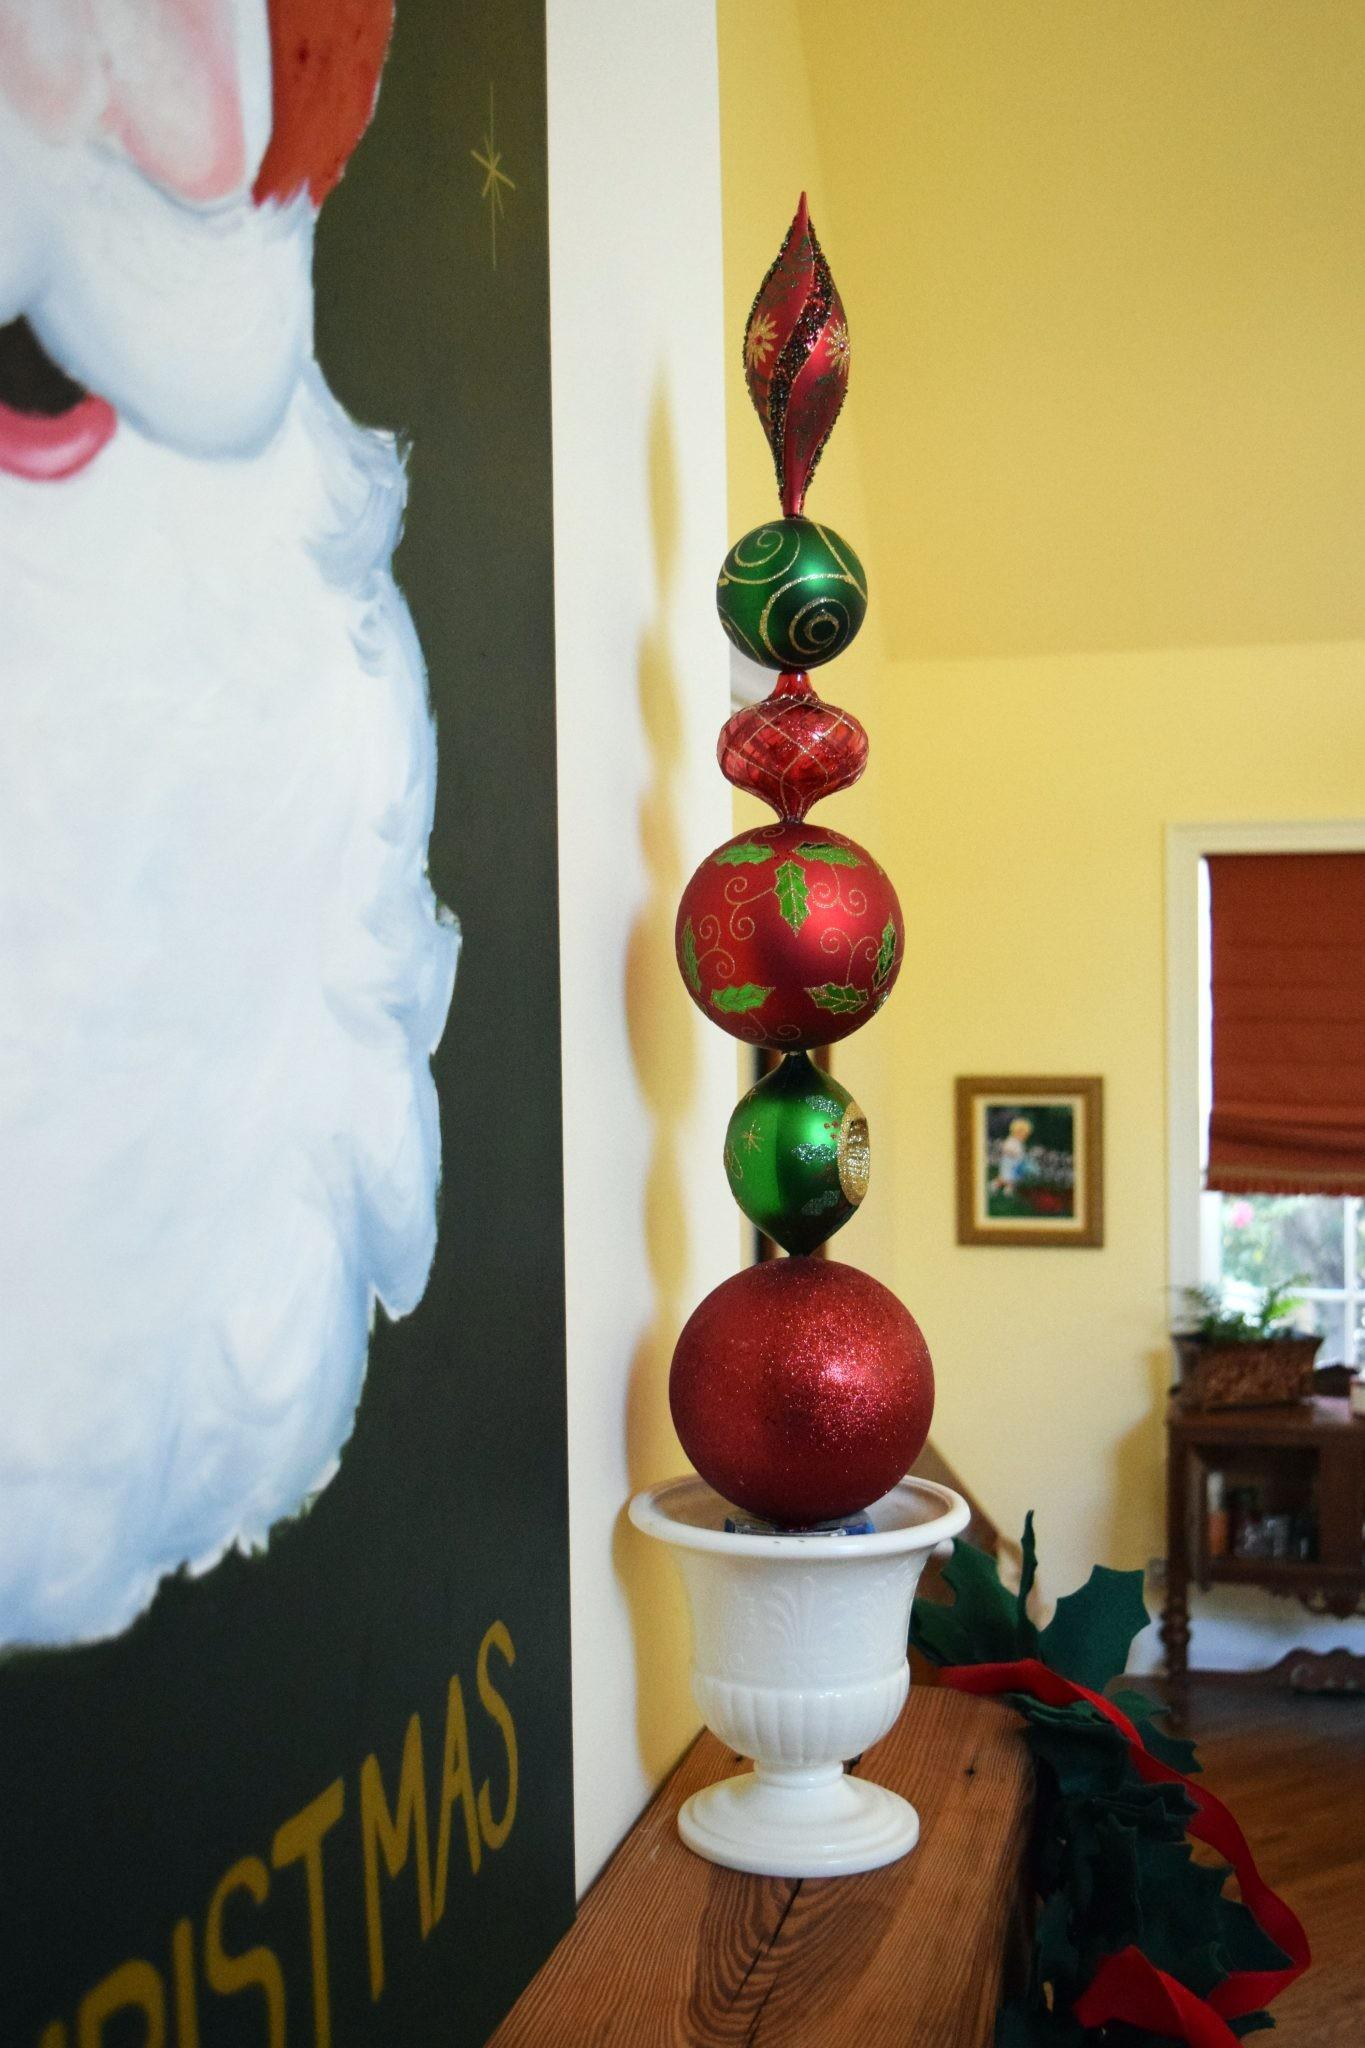 Resourceful Sparkling Diy Christmas Ornament Topiaries That Will Fascinate You For Sure Fantastic Pictures Decoratorist